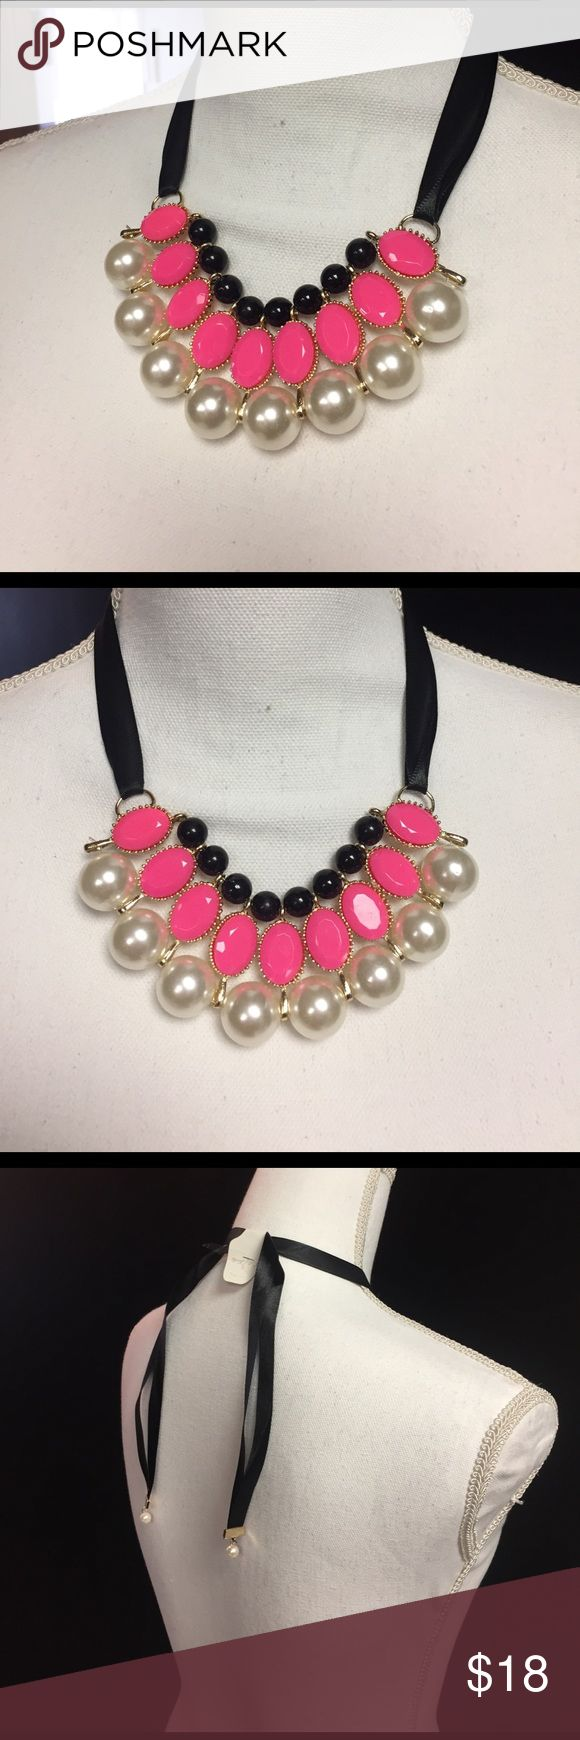 Large chunky pearl necklace chocker adjustable new Large chunky pearl hot pink necklace chocker adjustable new beautiful piece Jewelry Necklaces